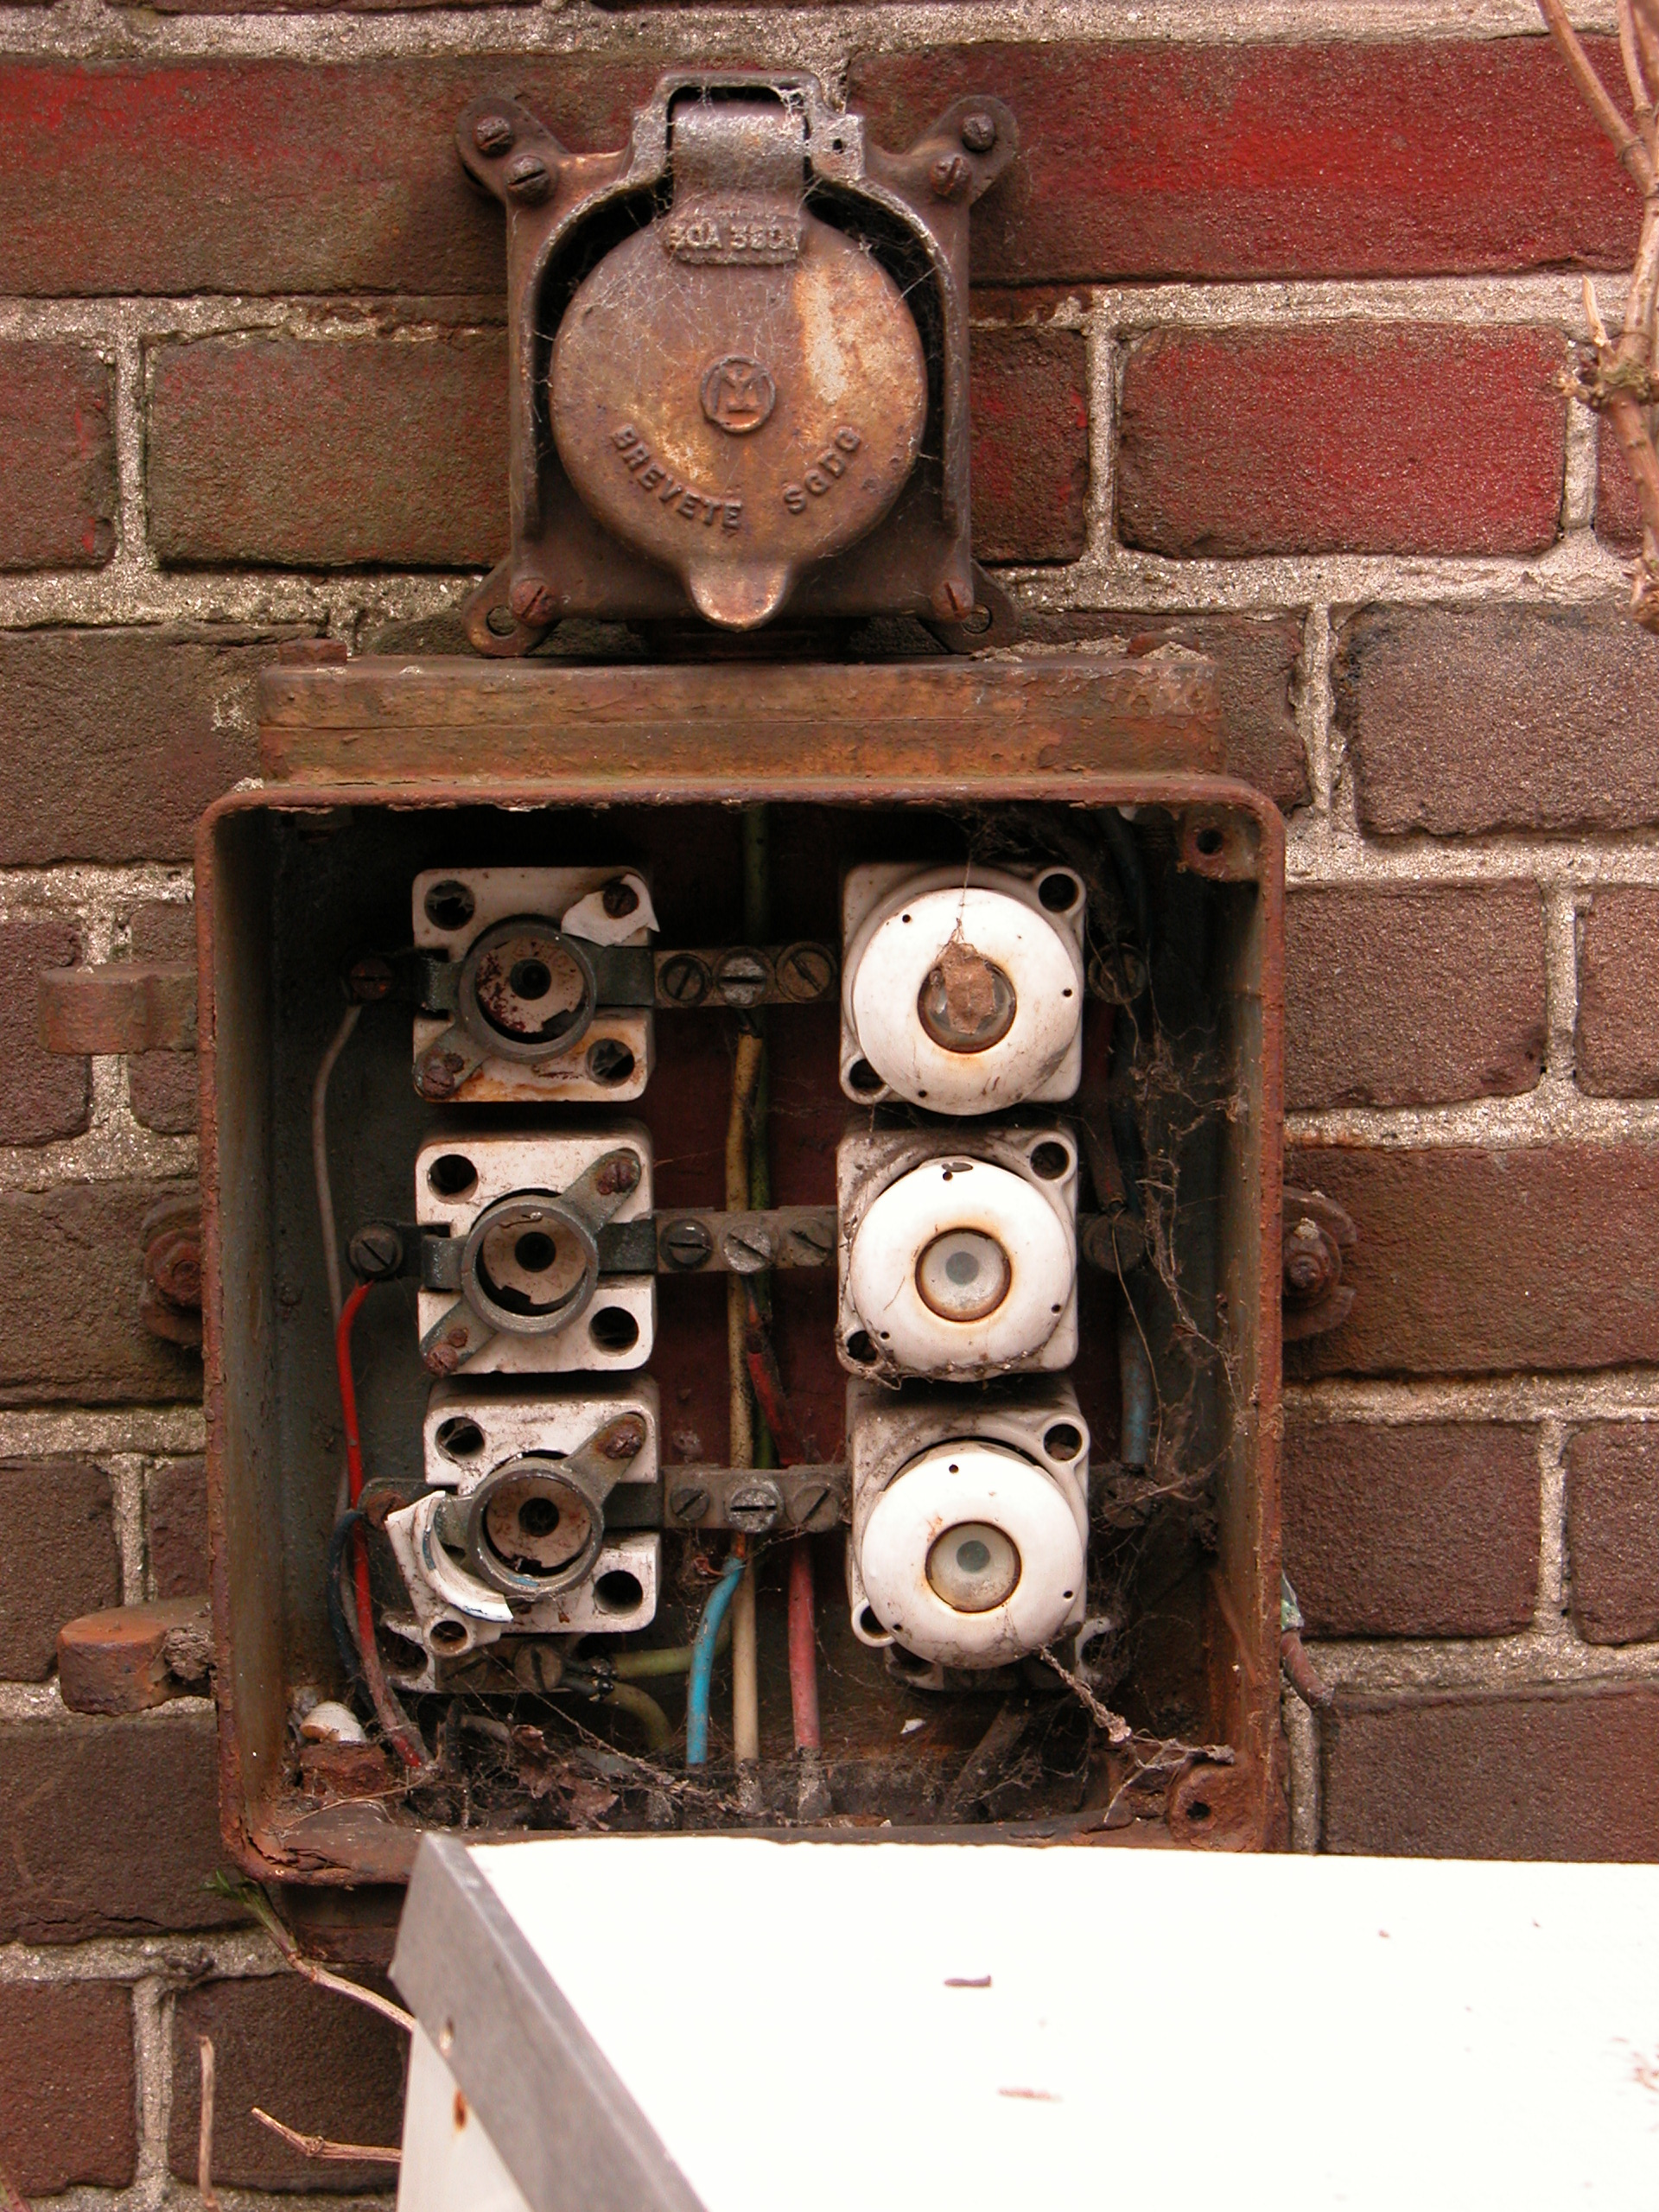 Imageafter Photos Fusebox Fuse Fuses Objects Circuits Rusted Old Box Help Terms